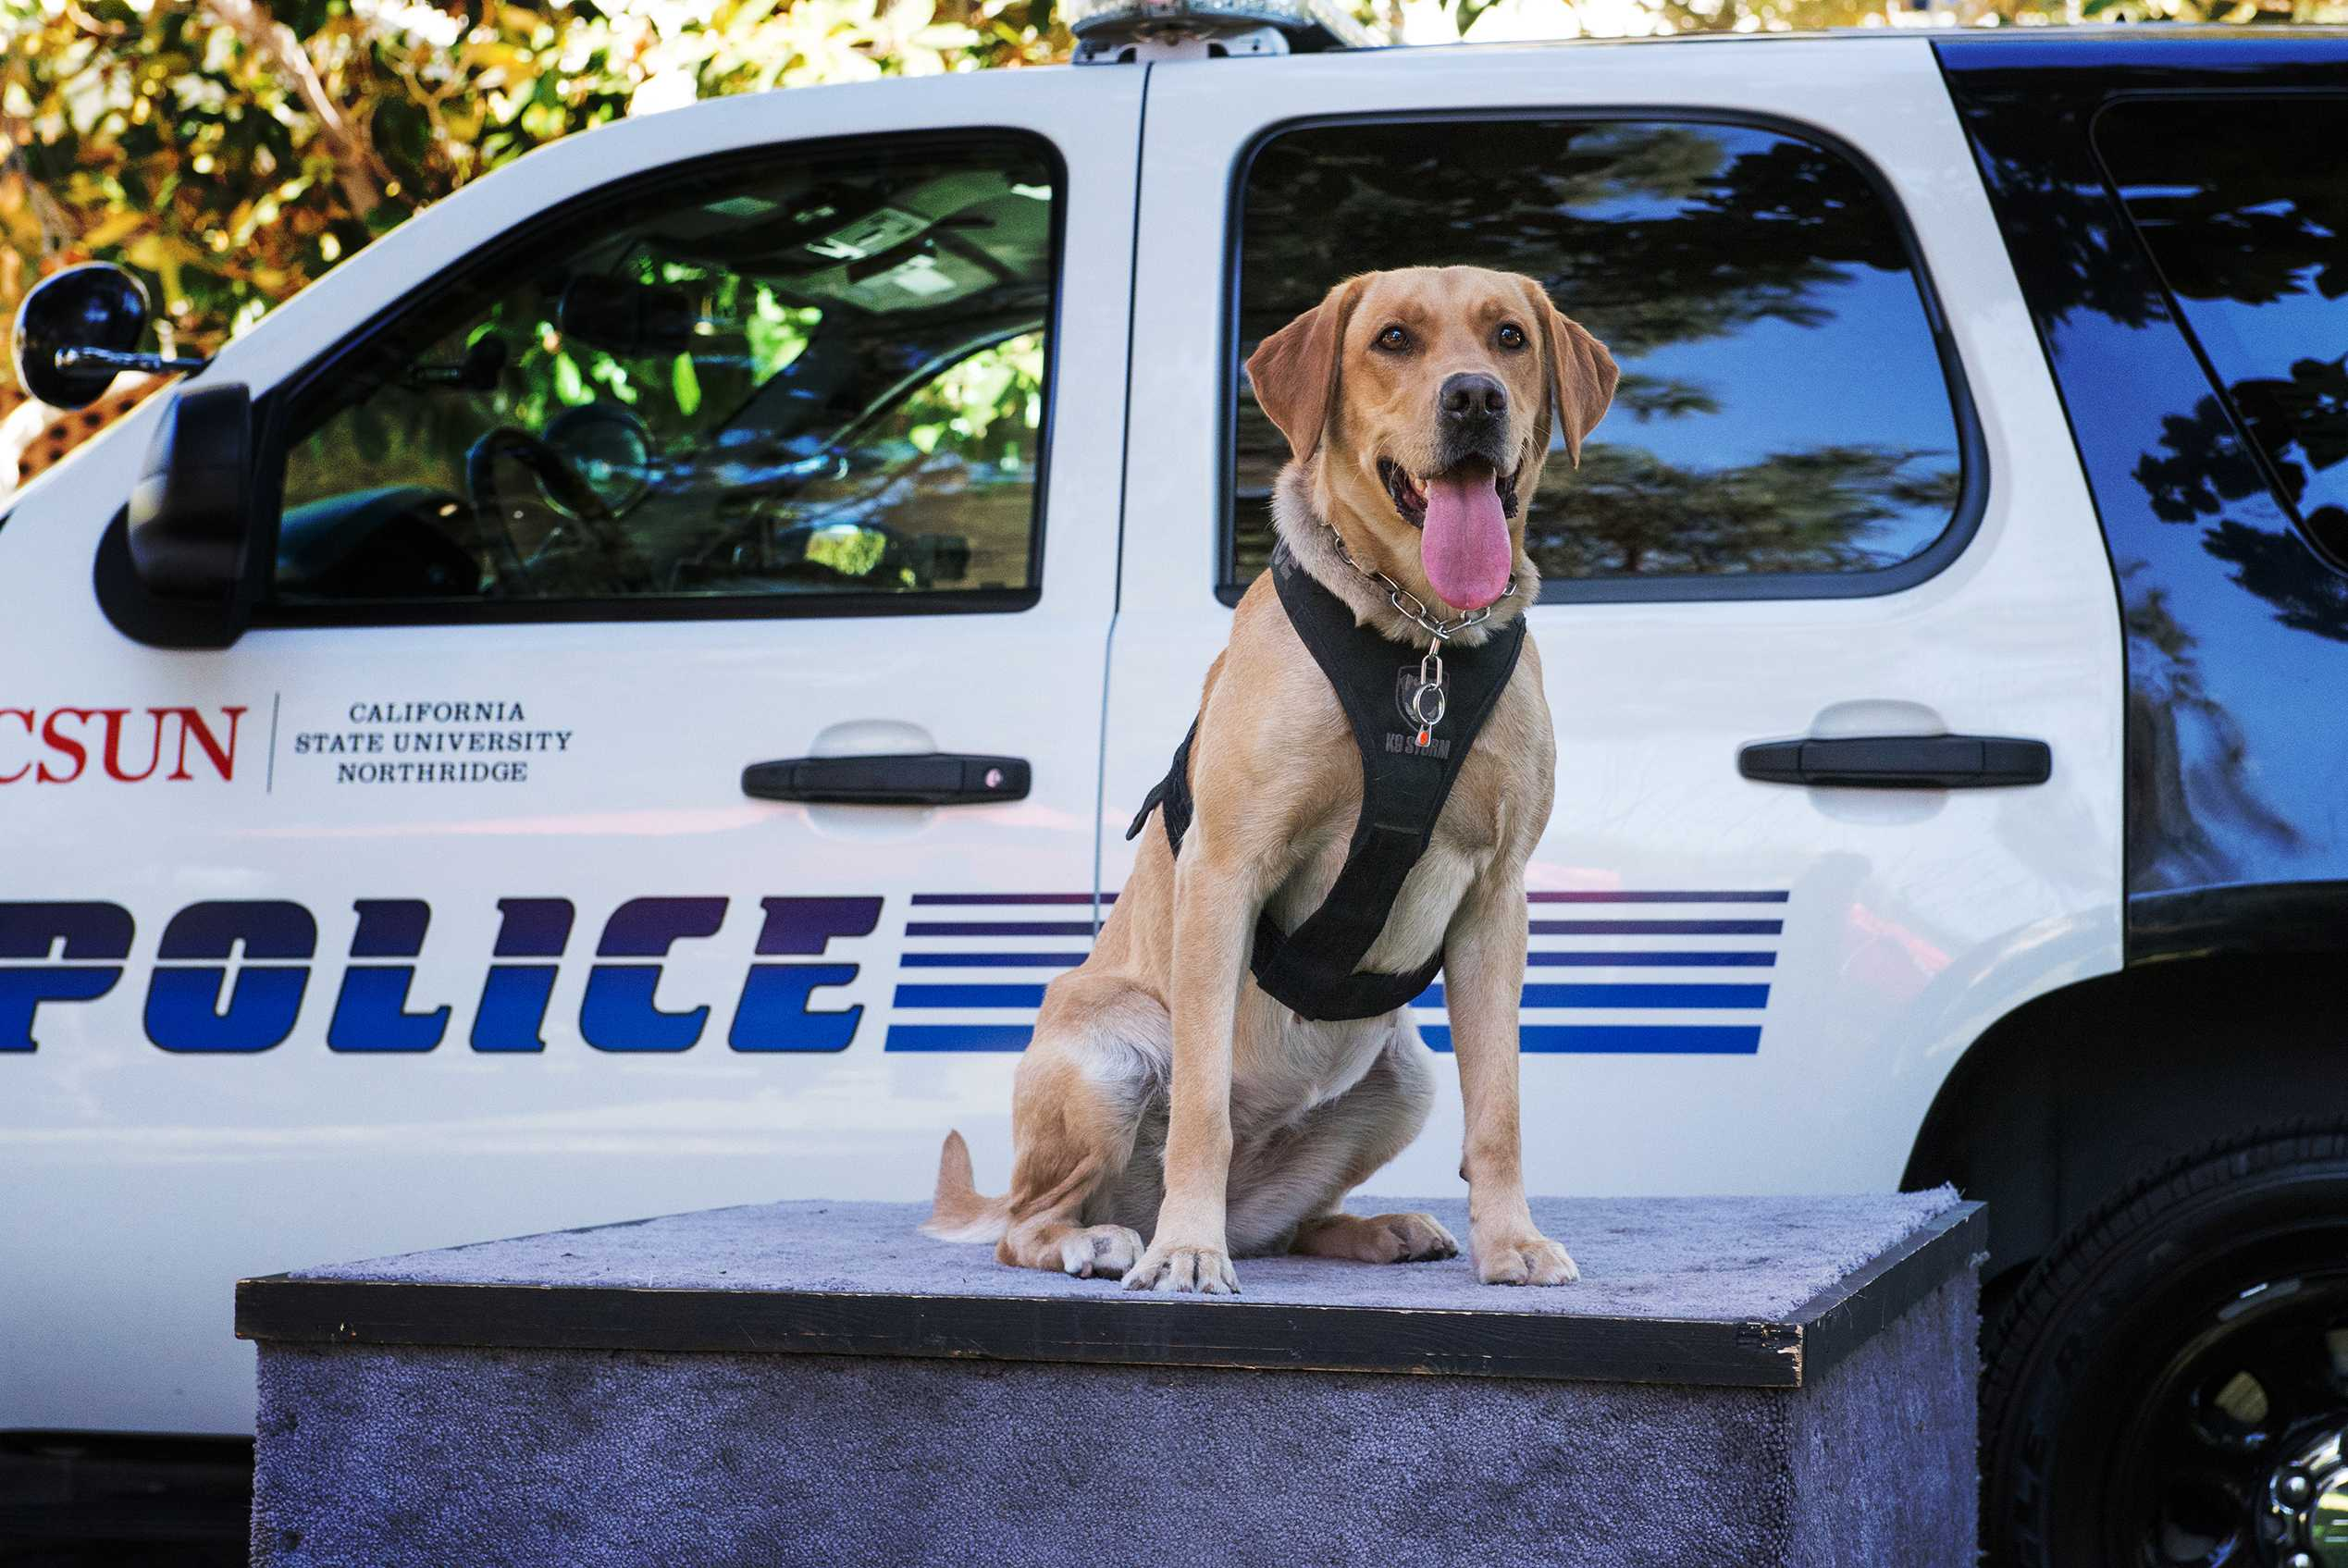 Police dog pictured in front of police car